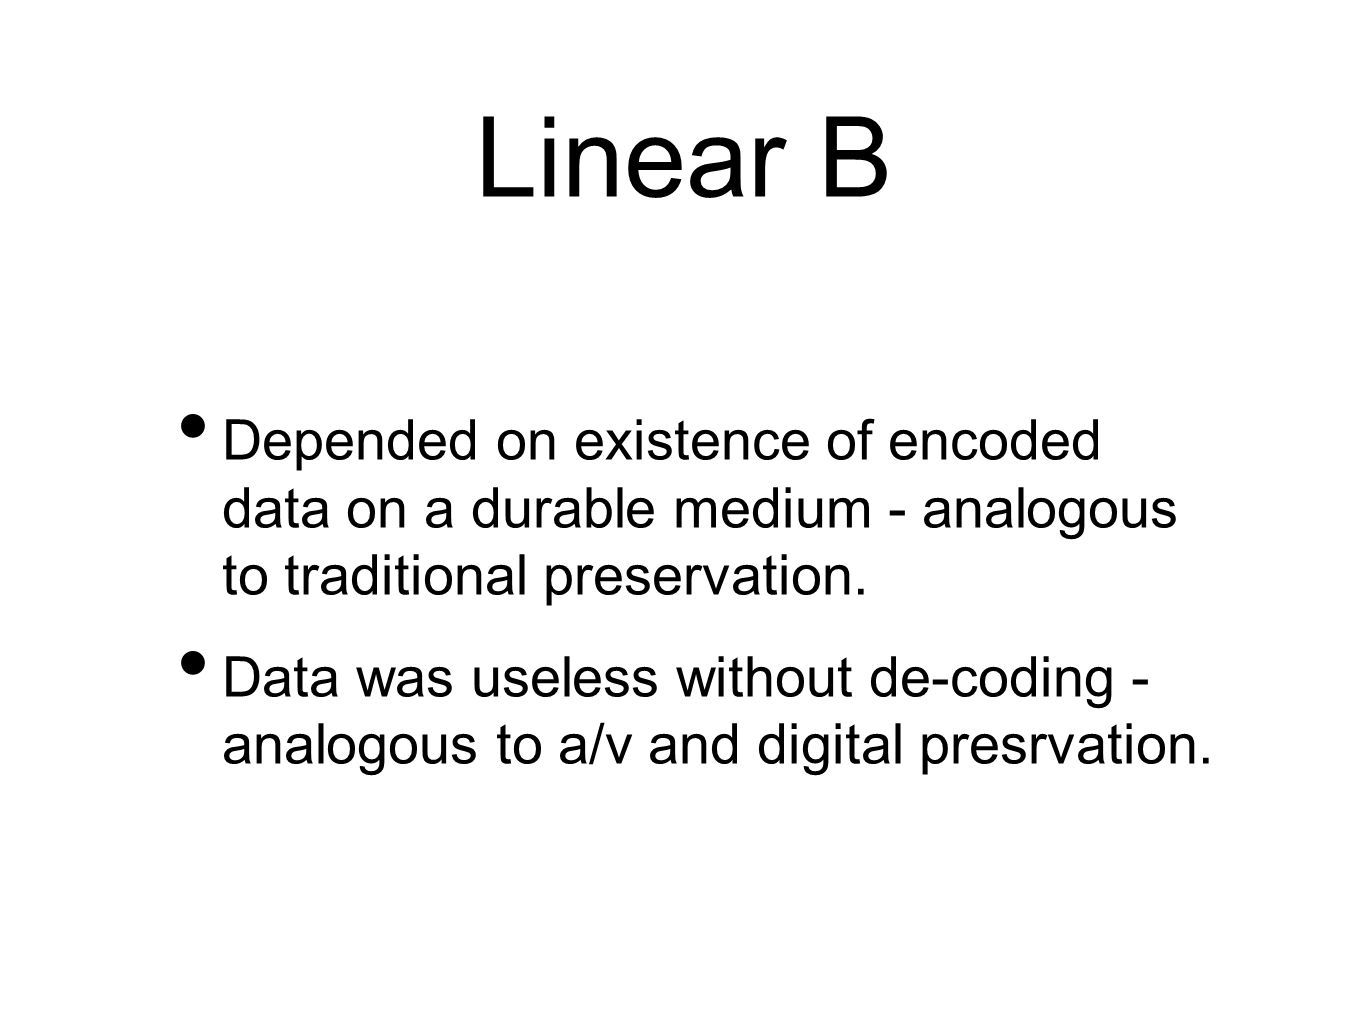 Linear B Depended on existence of encoded data on a durable medium - analogous to traditional preservation.